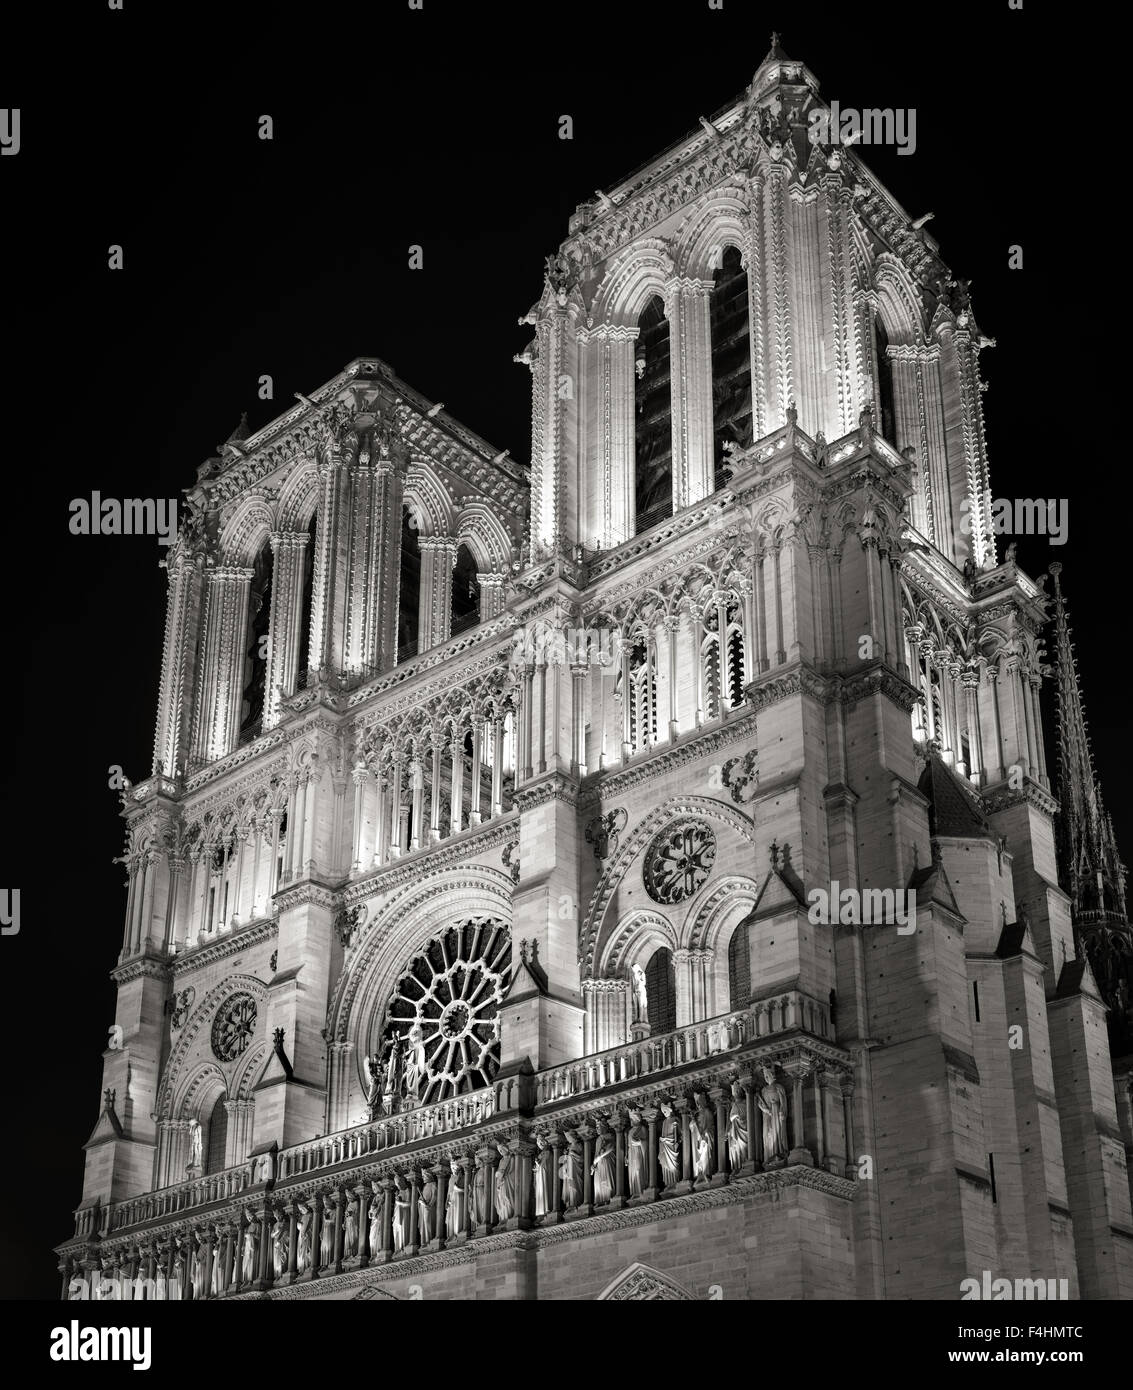 Towers and Facade of Notre Dame de Paris Cathedral illuminated at night, Ile de la Cite, France. French Gothic Architecture - Stock Image